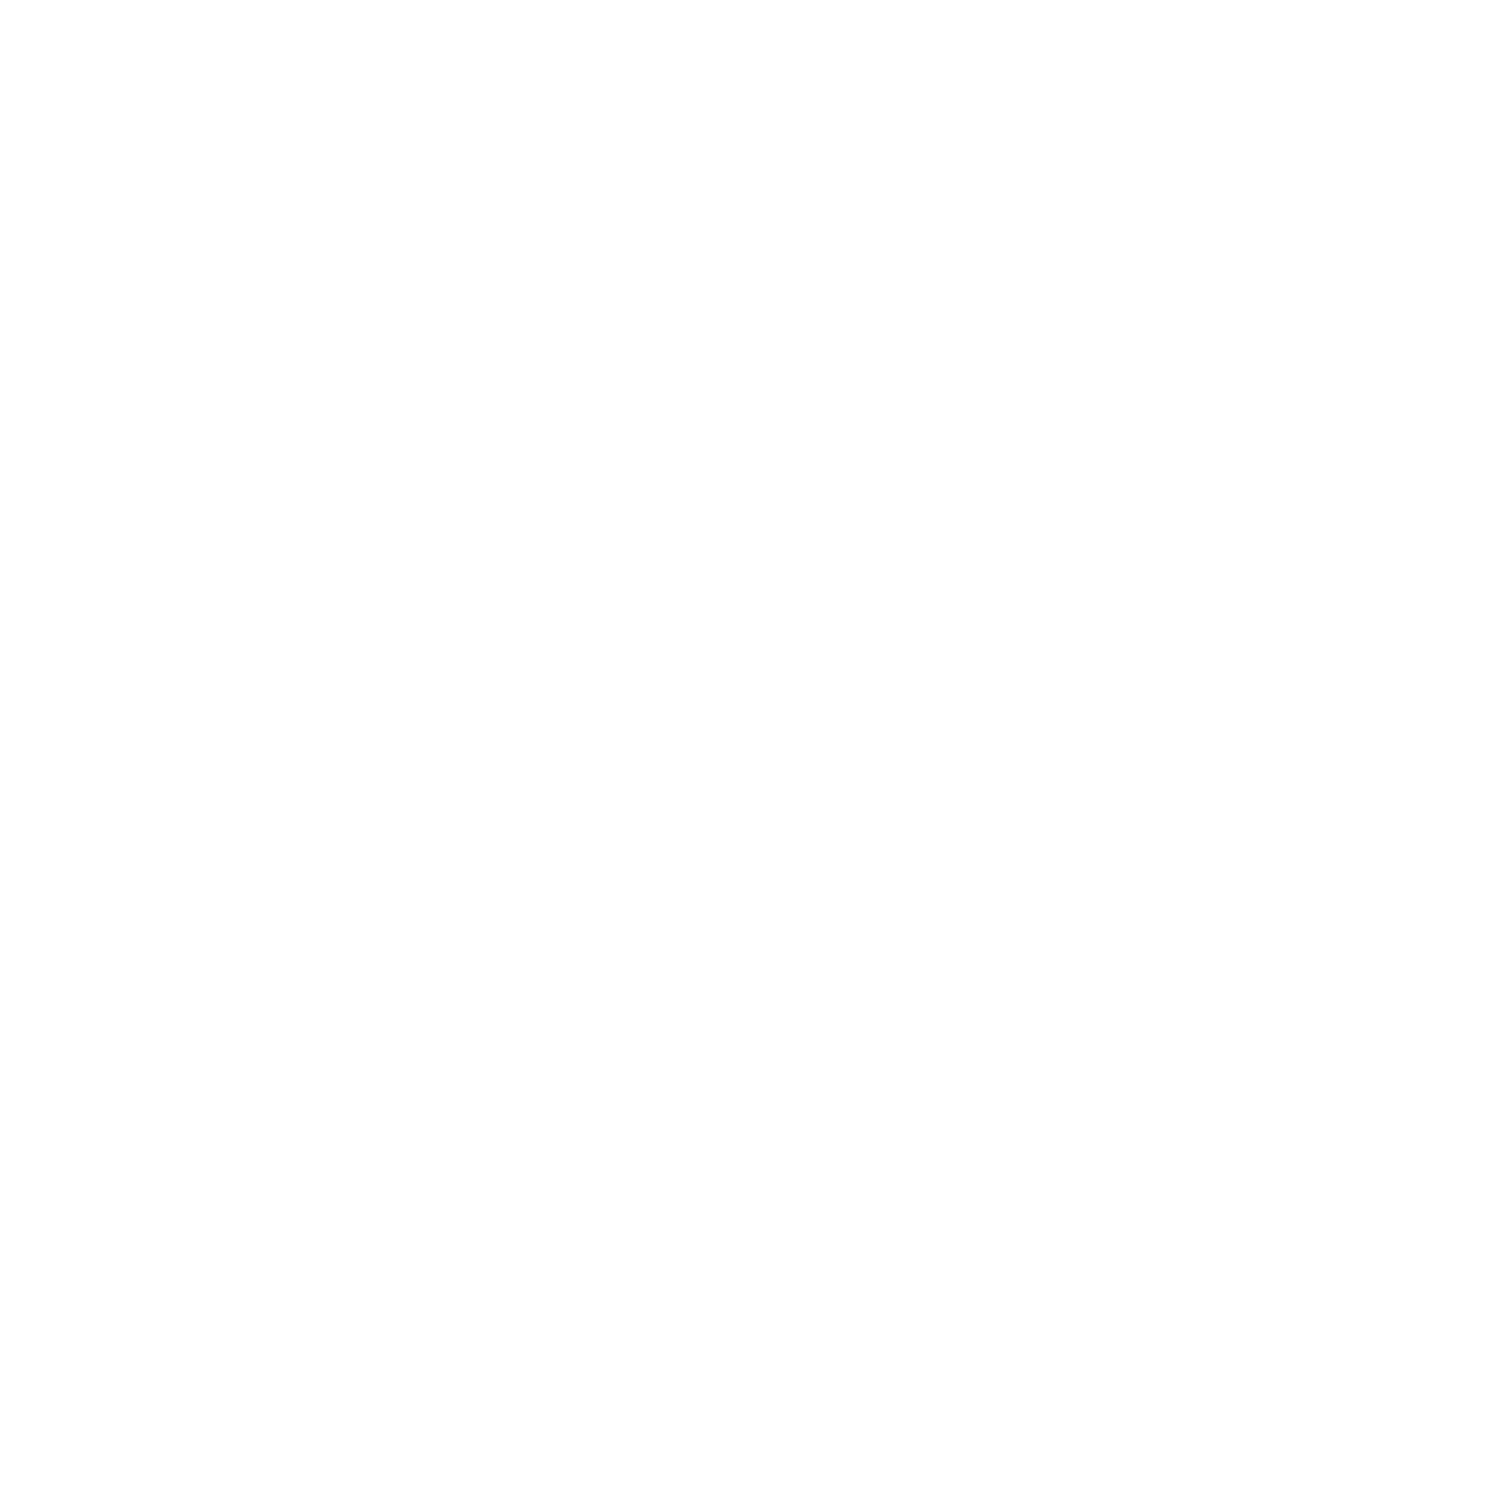 Lake & Wood Brew Co.